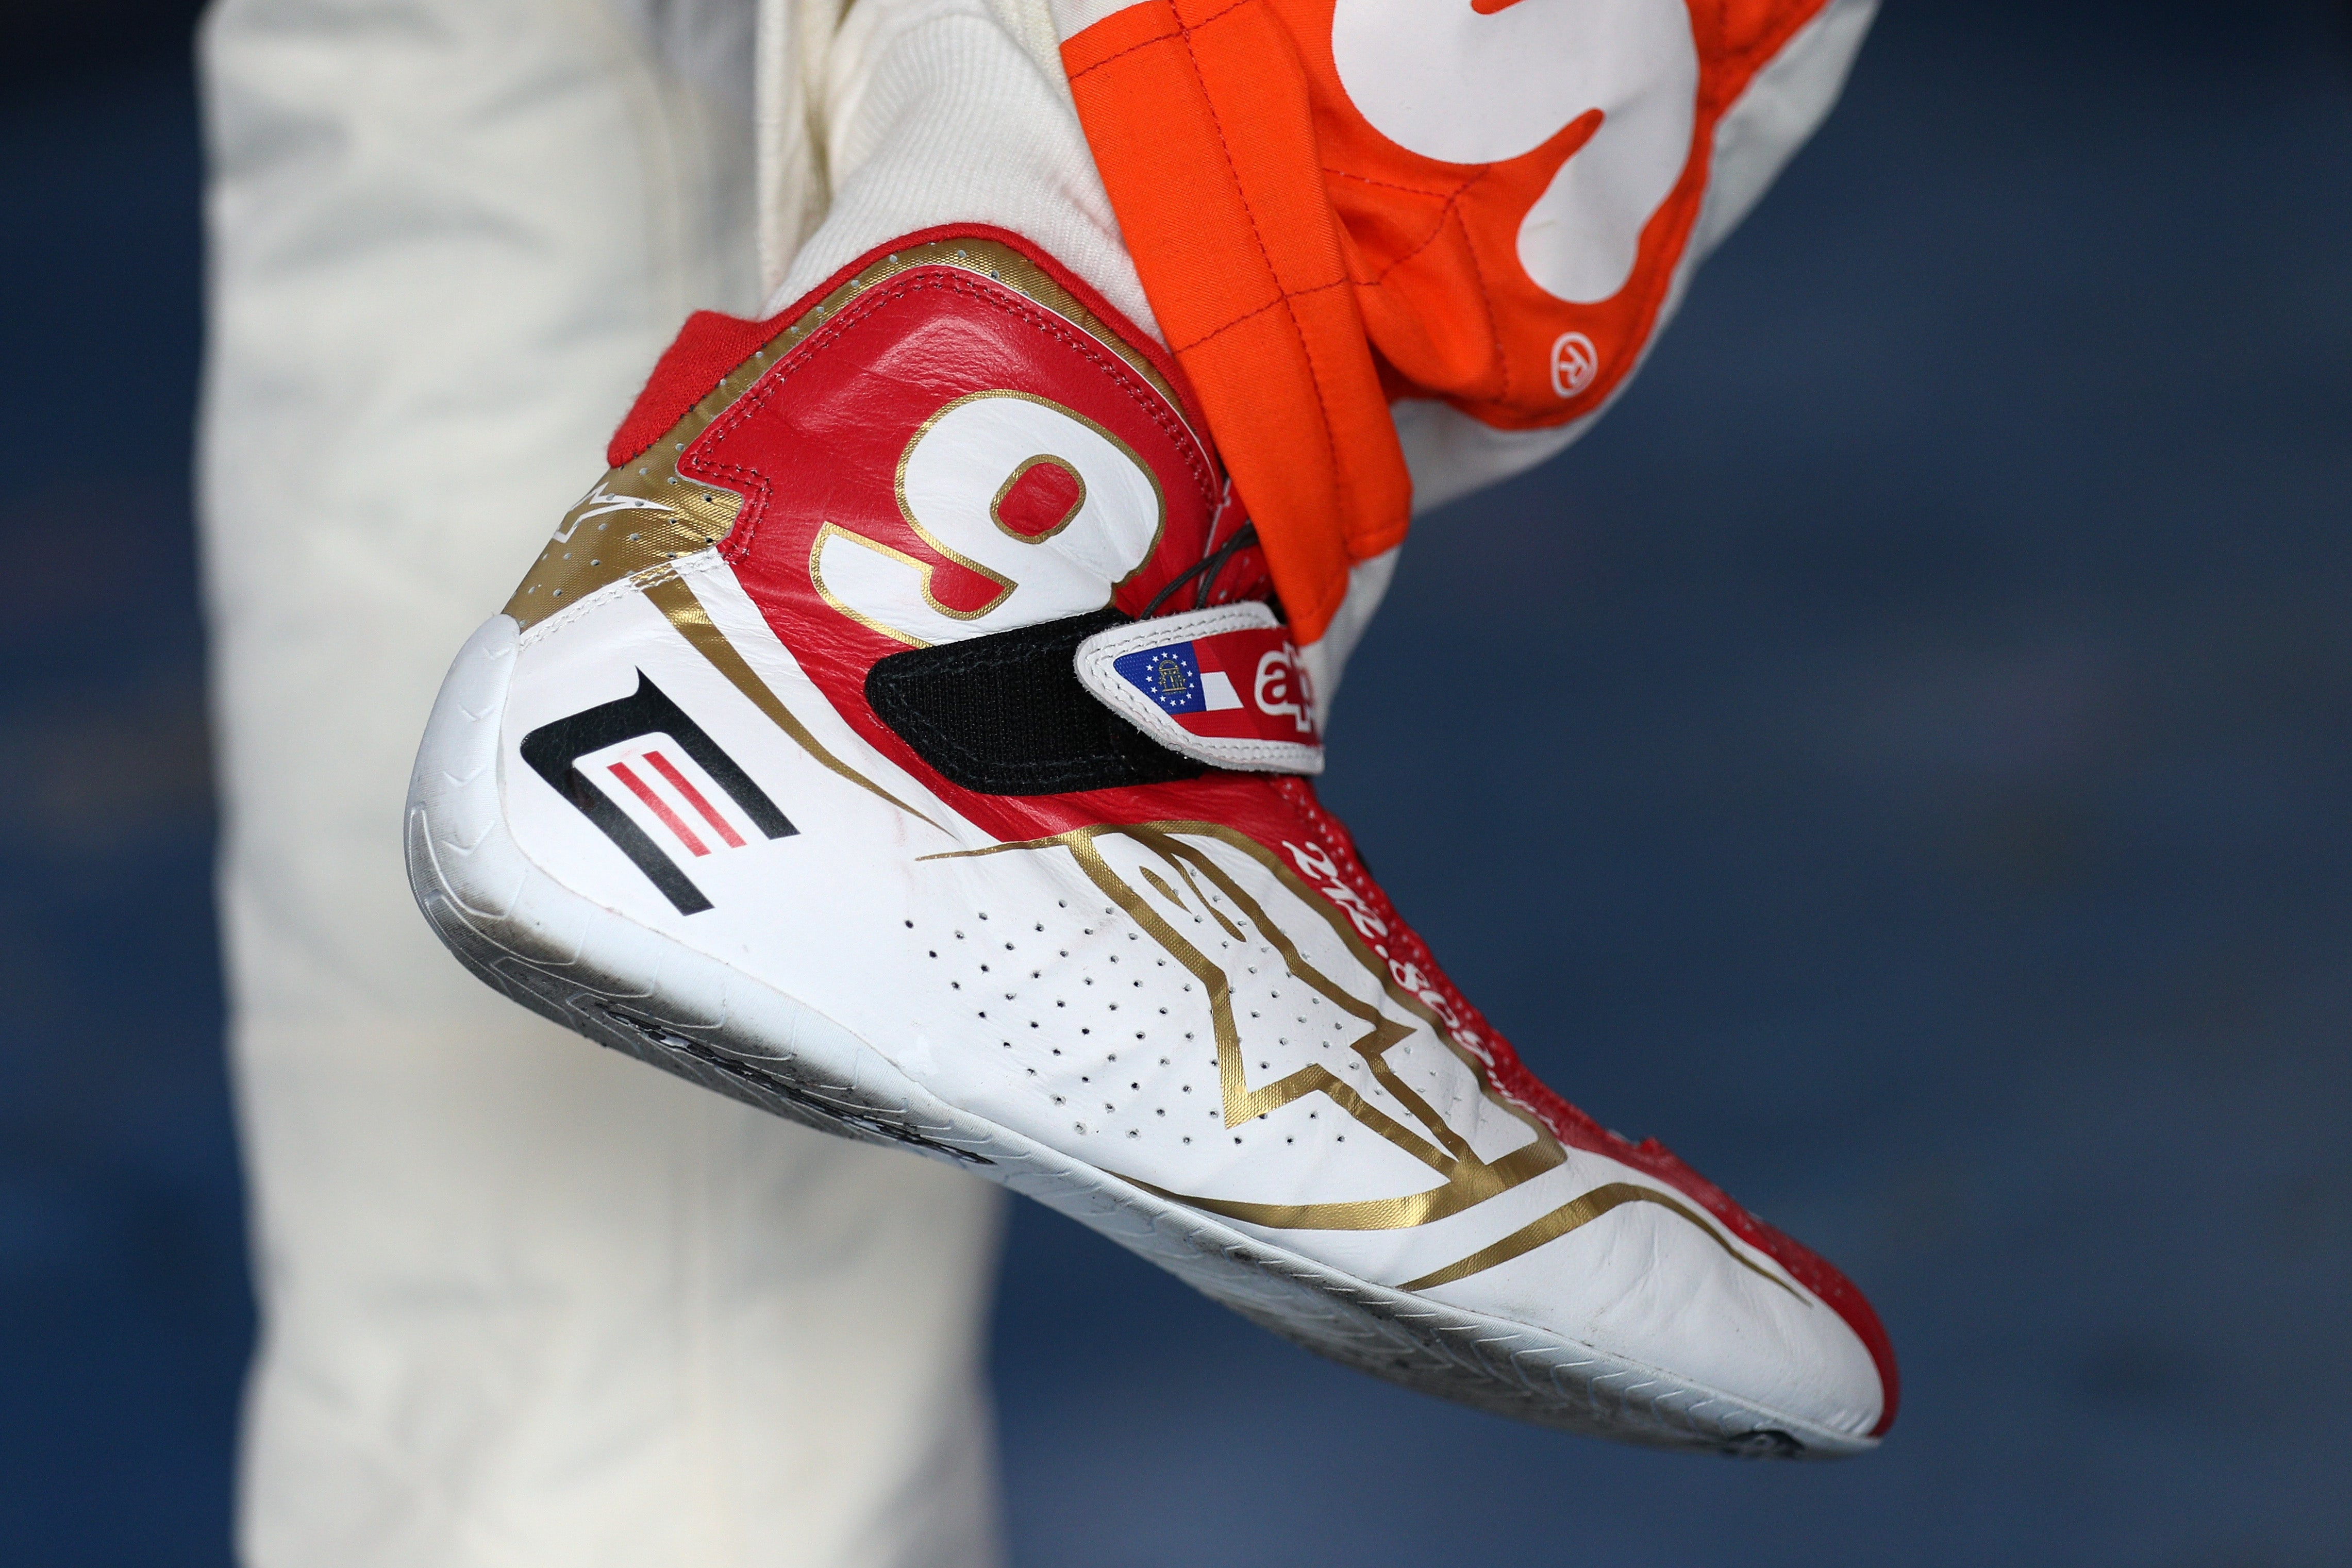 TALLADEGA, AL - MAY 05: A detailed view of shoes worn by Chase Elliott, driver of the #24 Hooters Chevrolet, commemorating his father Bill Elliott's 212.809 qualifying lap time, during practice for the Monster Energy NASCAR Cup Series GEICO 500 at Talladega Superspeedway on May 5, 2017 in Talladega, Alabama. (Photo by Chris Graythen/Getty Images)